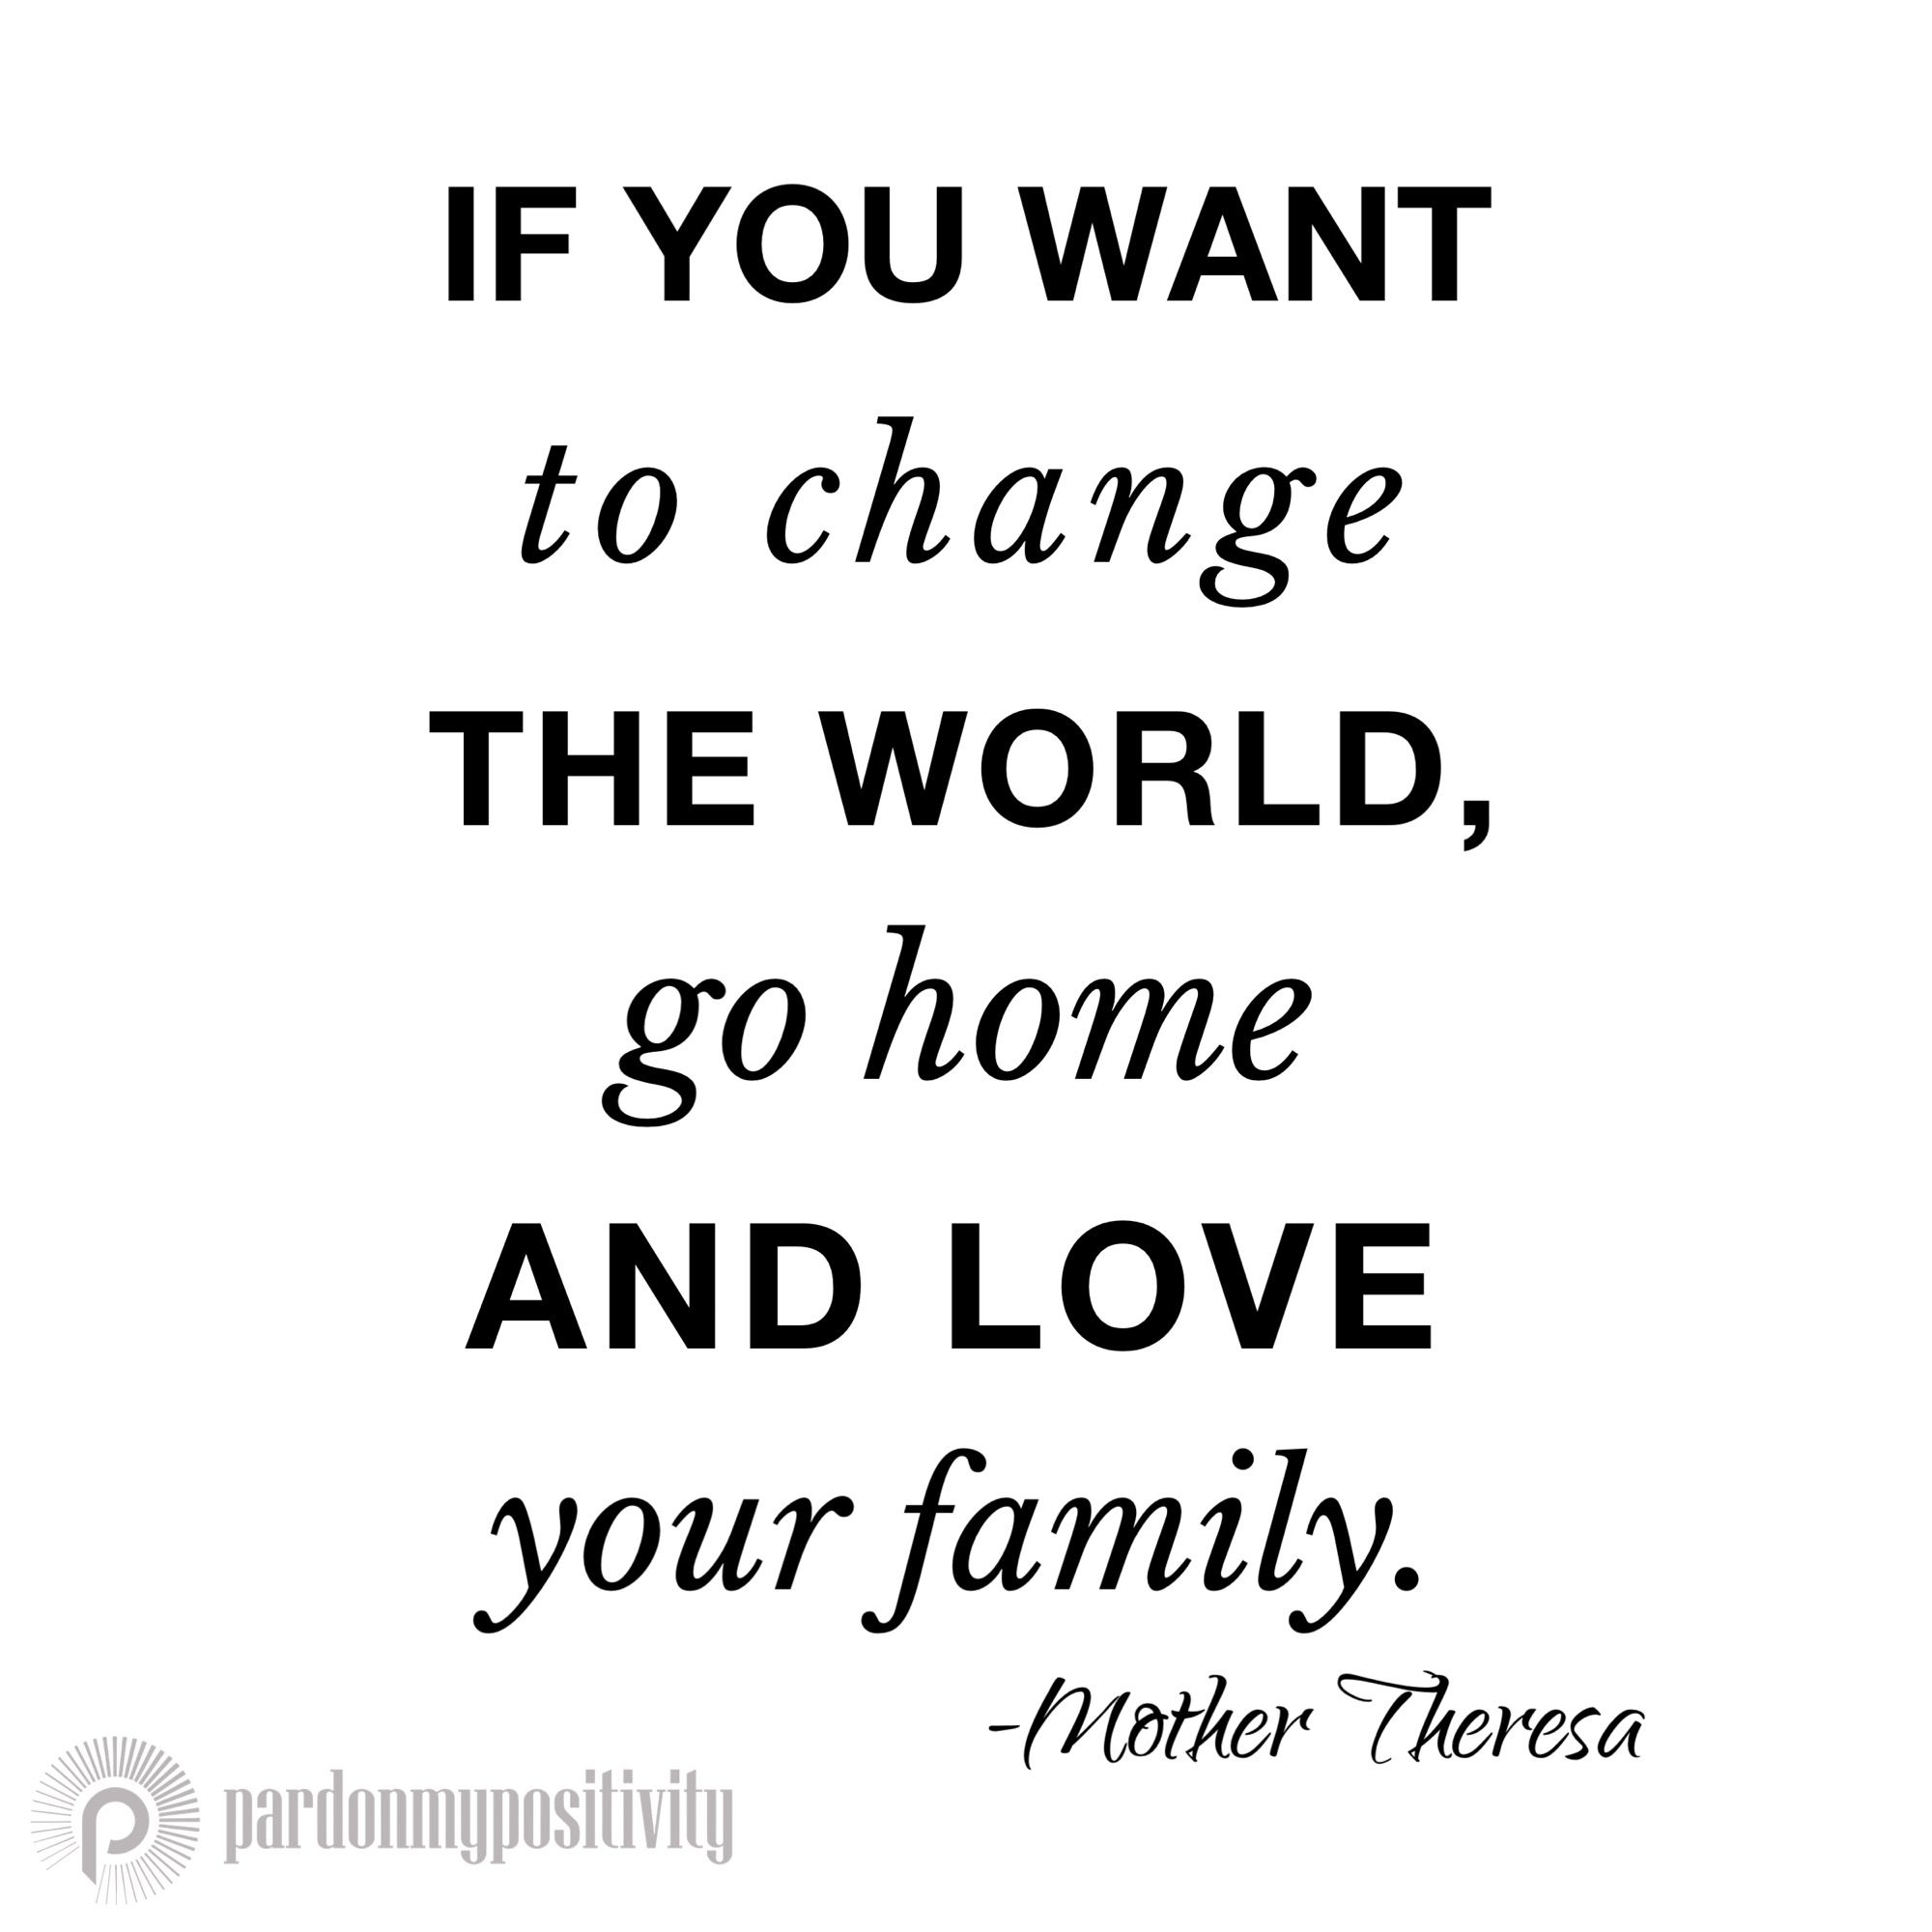 Mother Teresa Love Quotes If You Want To Change The World Go Home And Love Your Family